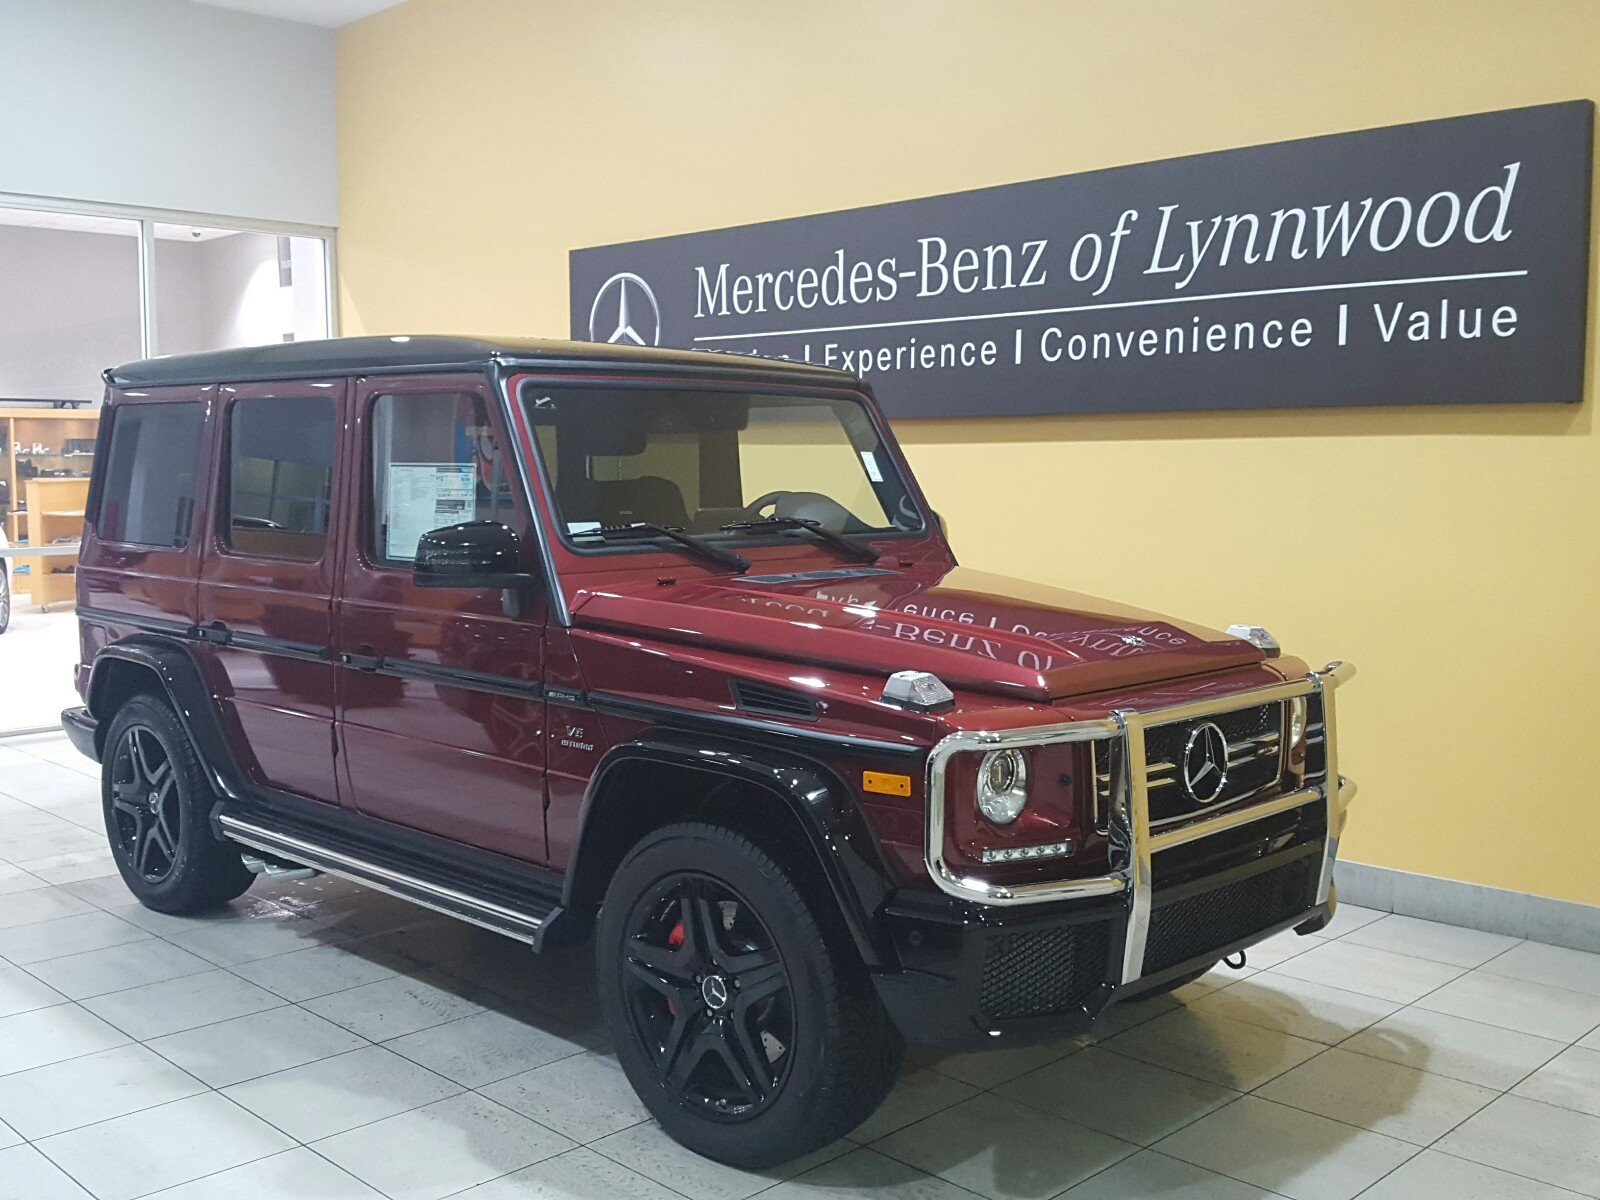 Pre owned 2018 mercedes benz g class amg g 63 4matic suv for Used g class mercedes benz